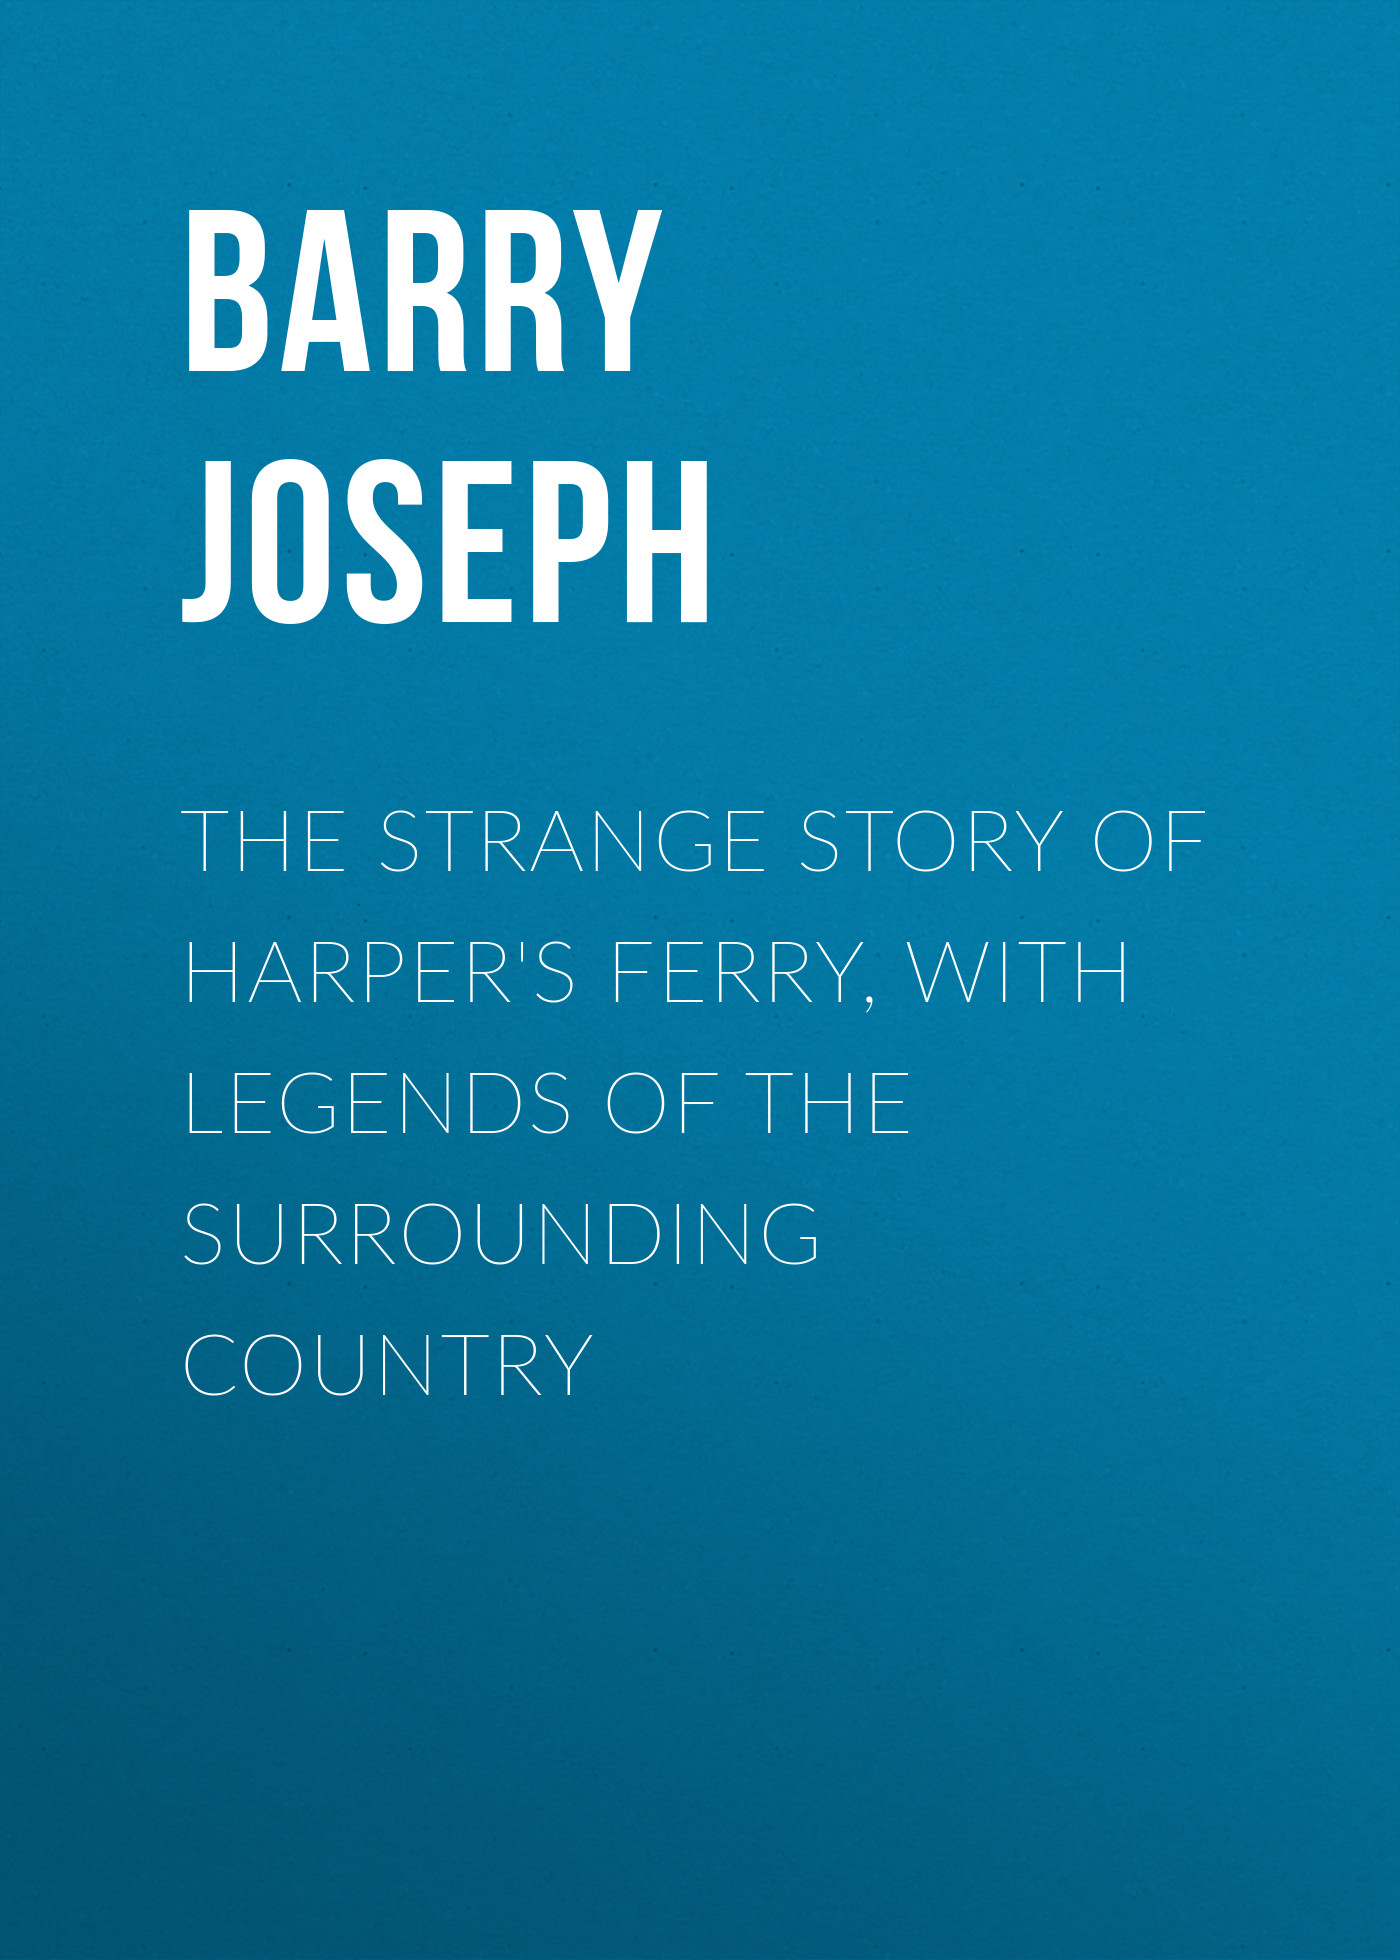 Barry Joseph The Strange Story of Harper's Ferry, with Legends of the Surrounding Country пальто alix story alix story mp002xw13vur